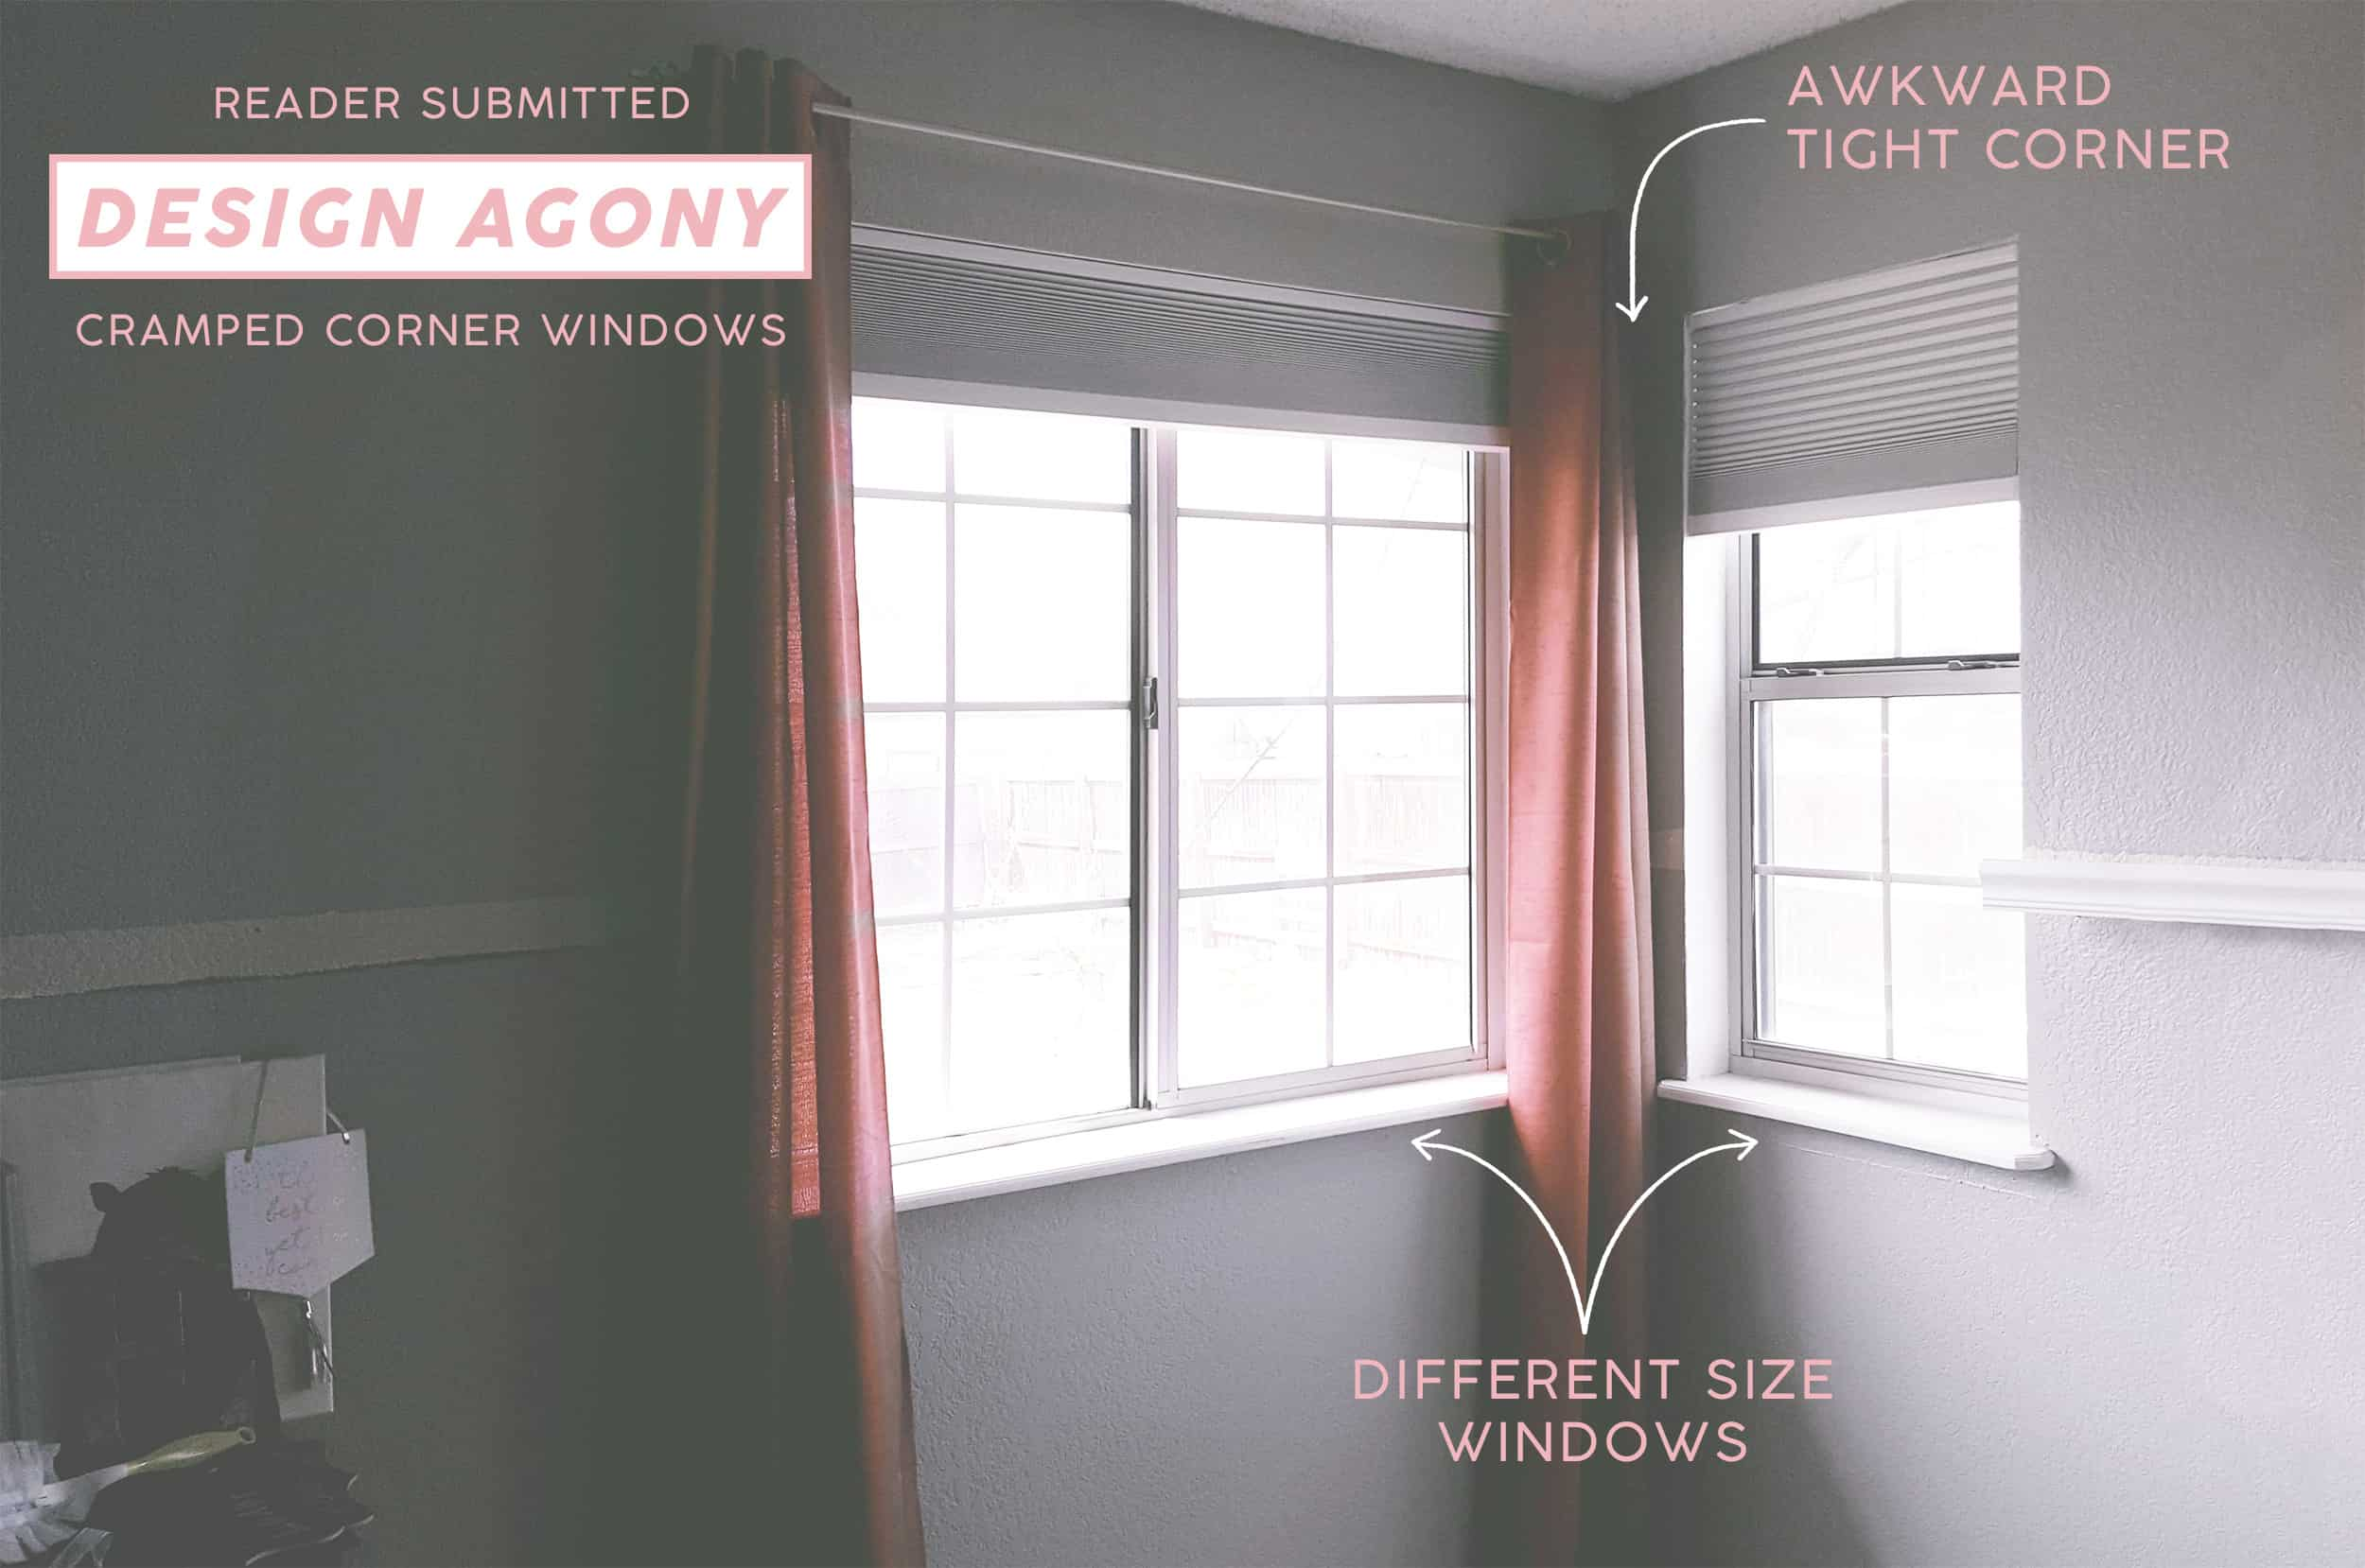 9 Solutions For How To Dress Awkward Windows